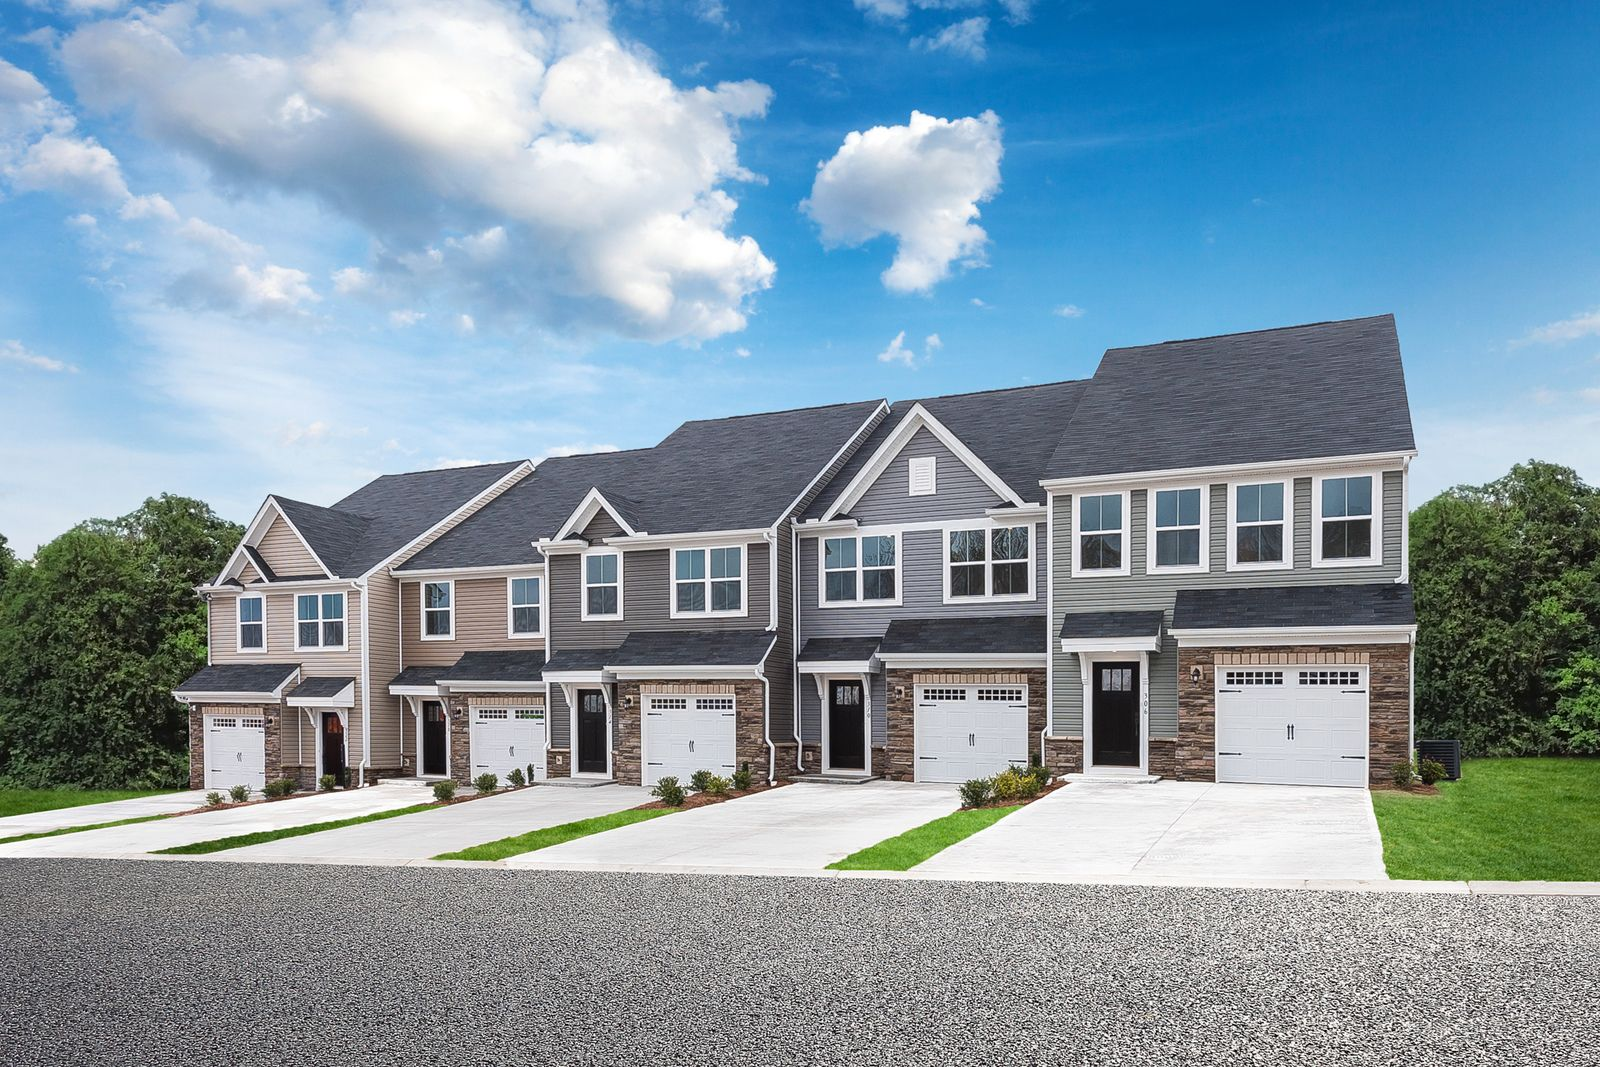 LAST CHANCE to own a new townhome for less than rent